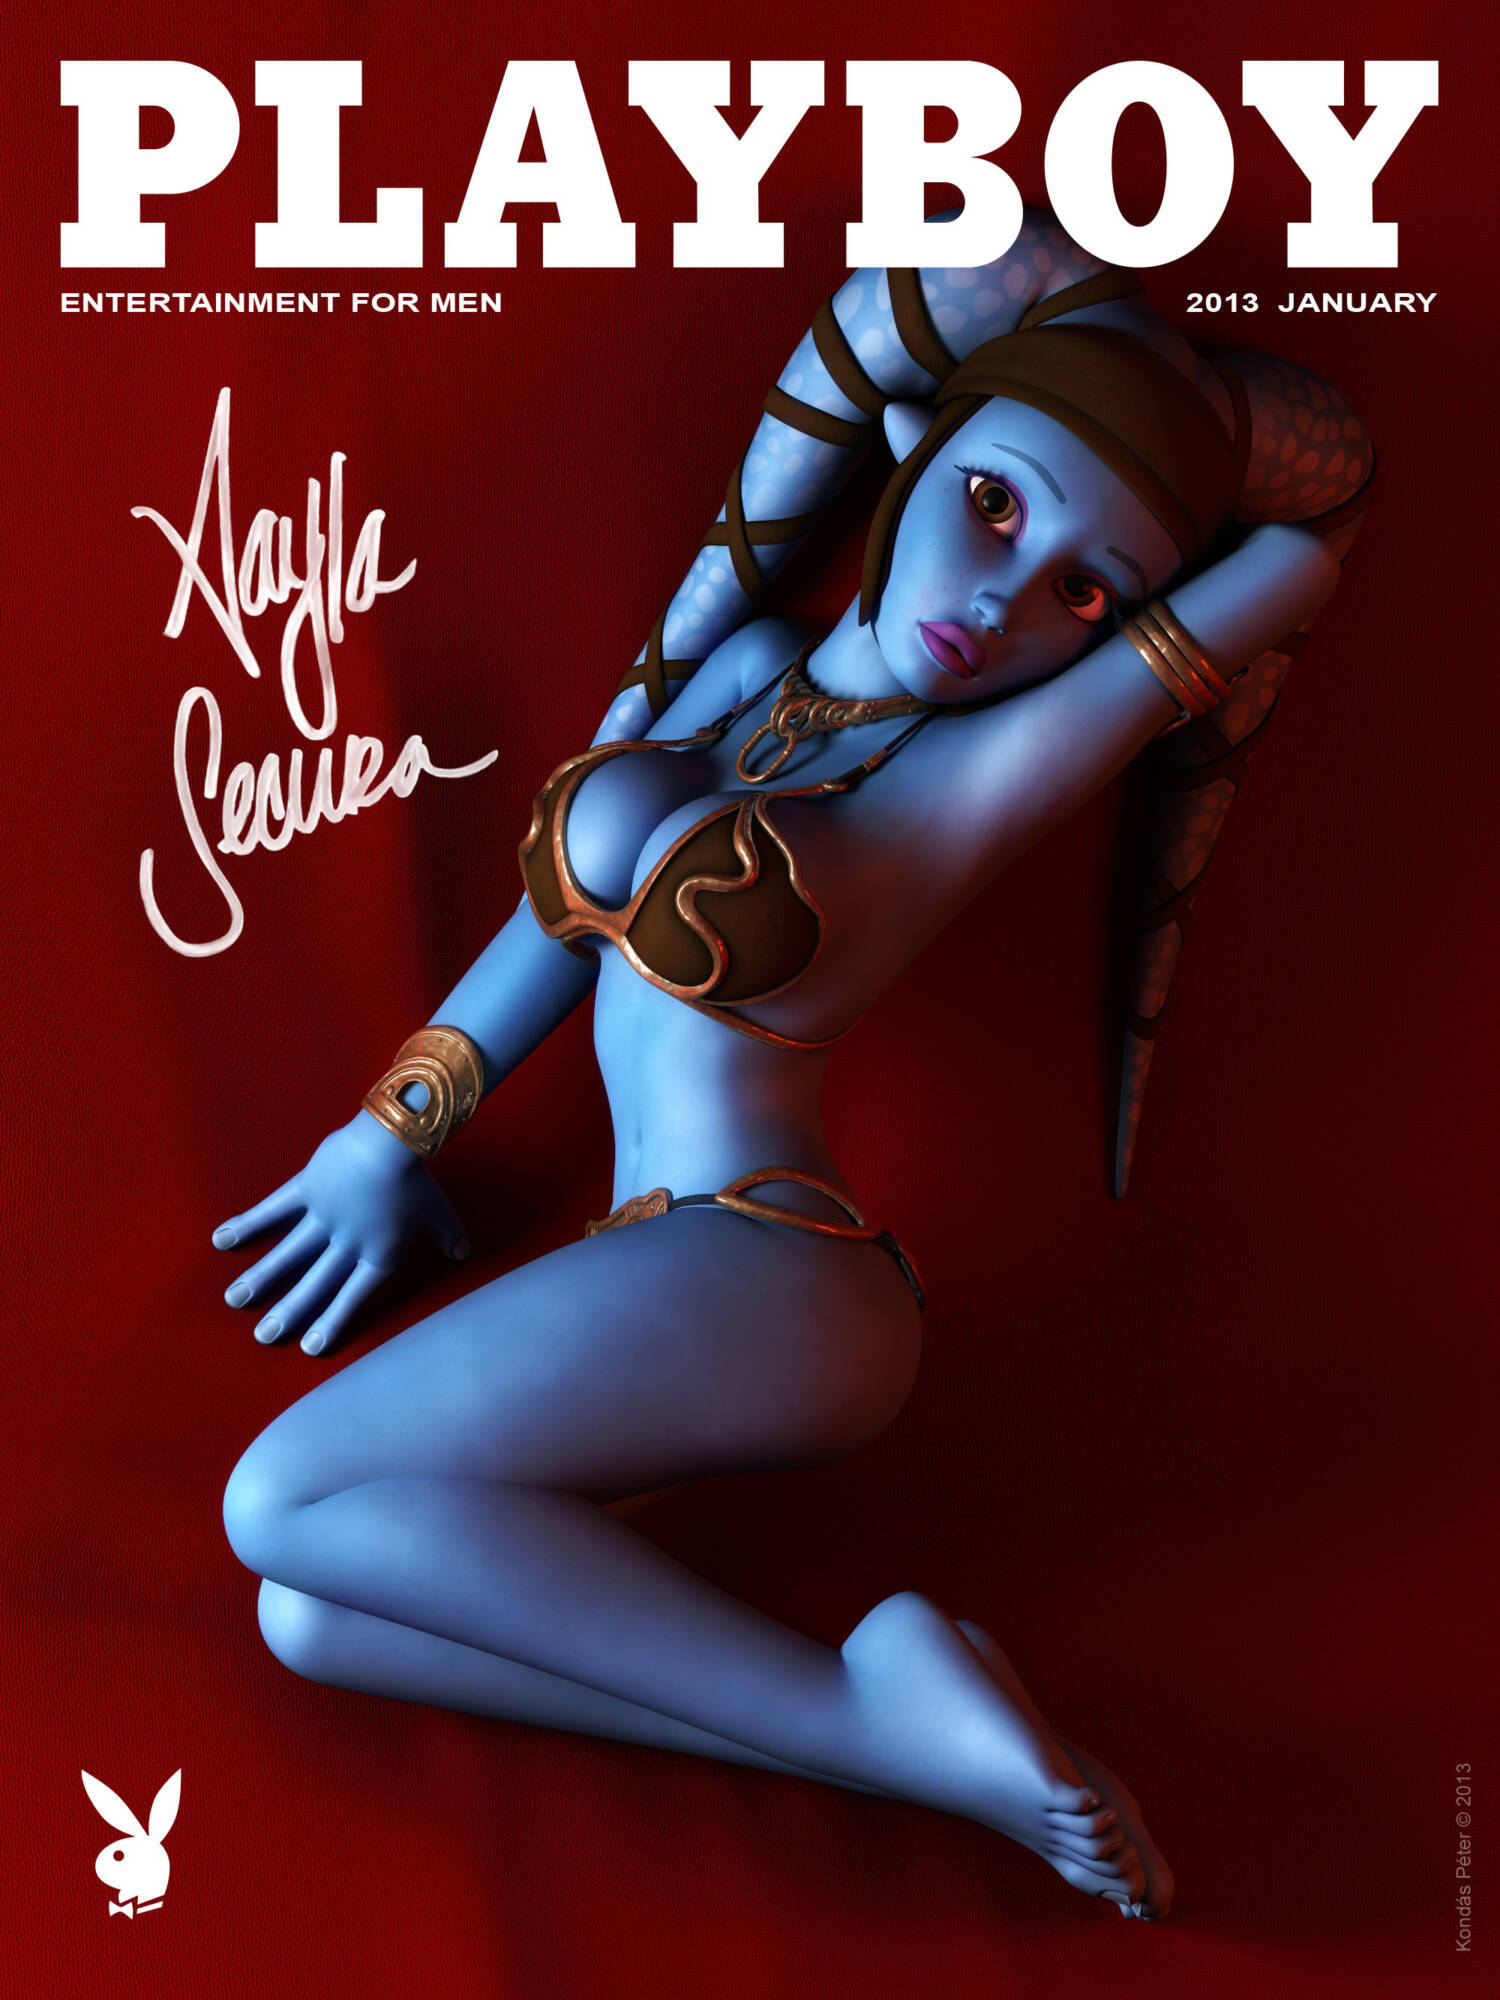 Playboy Covers and Centerfolds - page10 Aayla Secura On Playboy Cover A Fox's Tale,Crossover,Planet 51,Smurfs,Star Wars,  xxx porn rule34